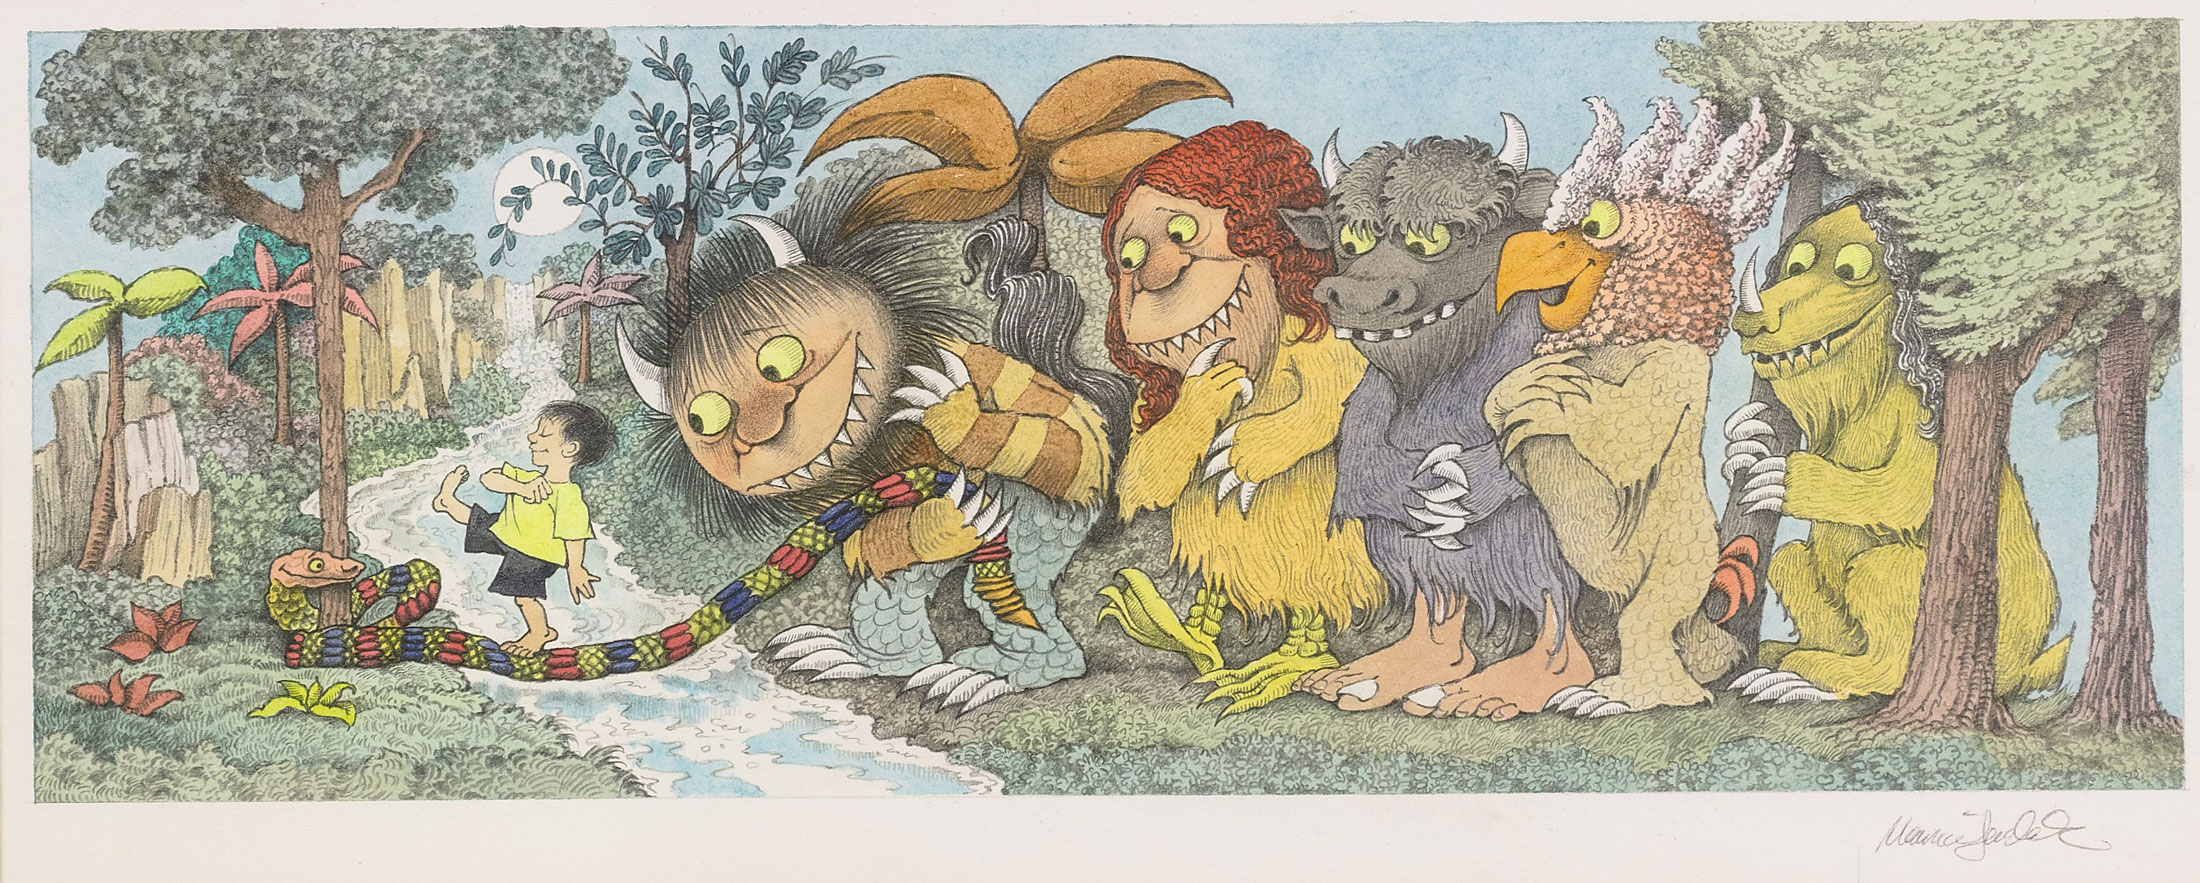 maurice sendak  Sotheby's Maurice Sendak Exhibition: Most Expensive Lots - Bloomberg